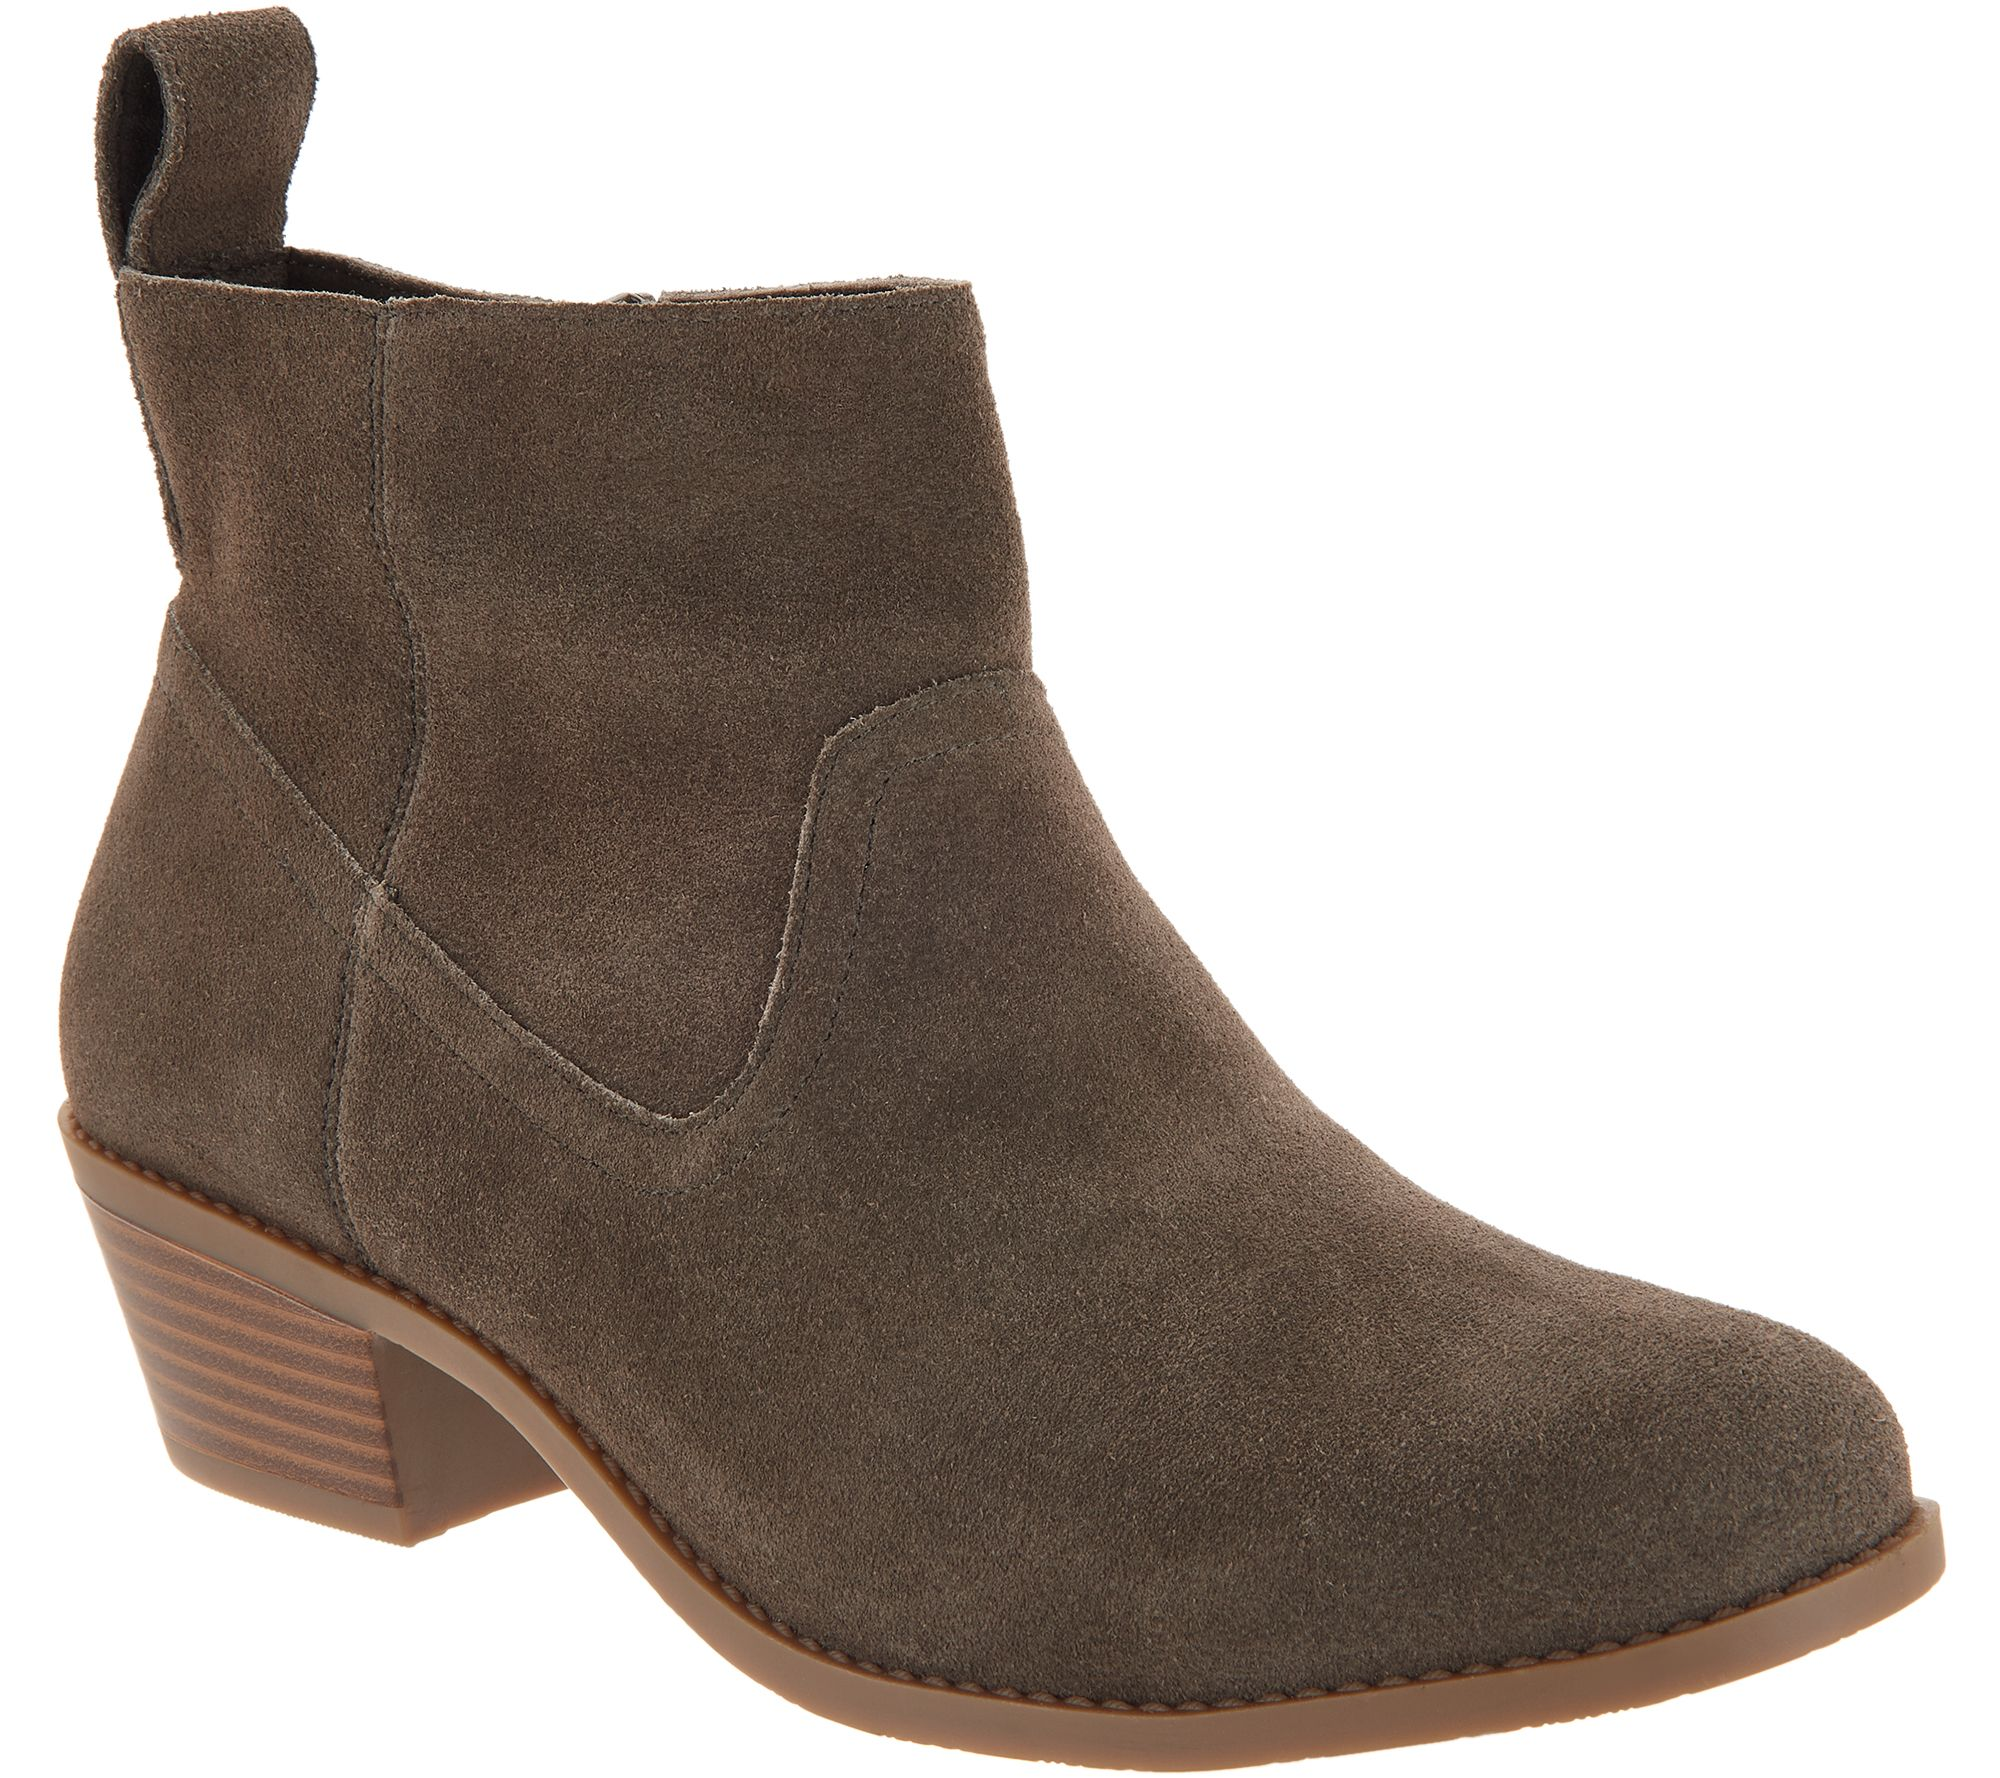 67a787a82f73 Vionic Water-Resistant Suede Ankle Boots - Vera - Page 1 — QVC.com